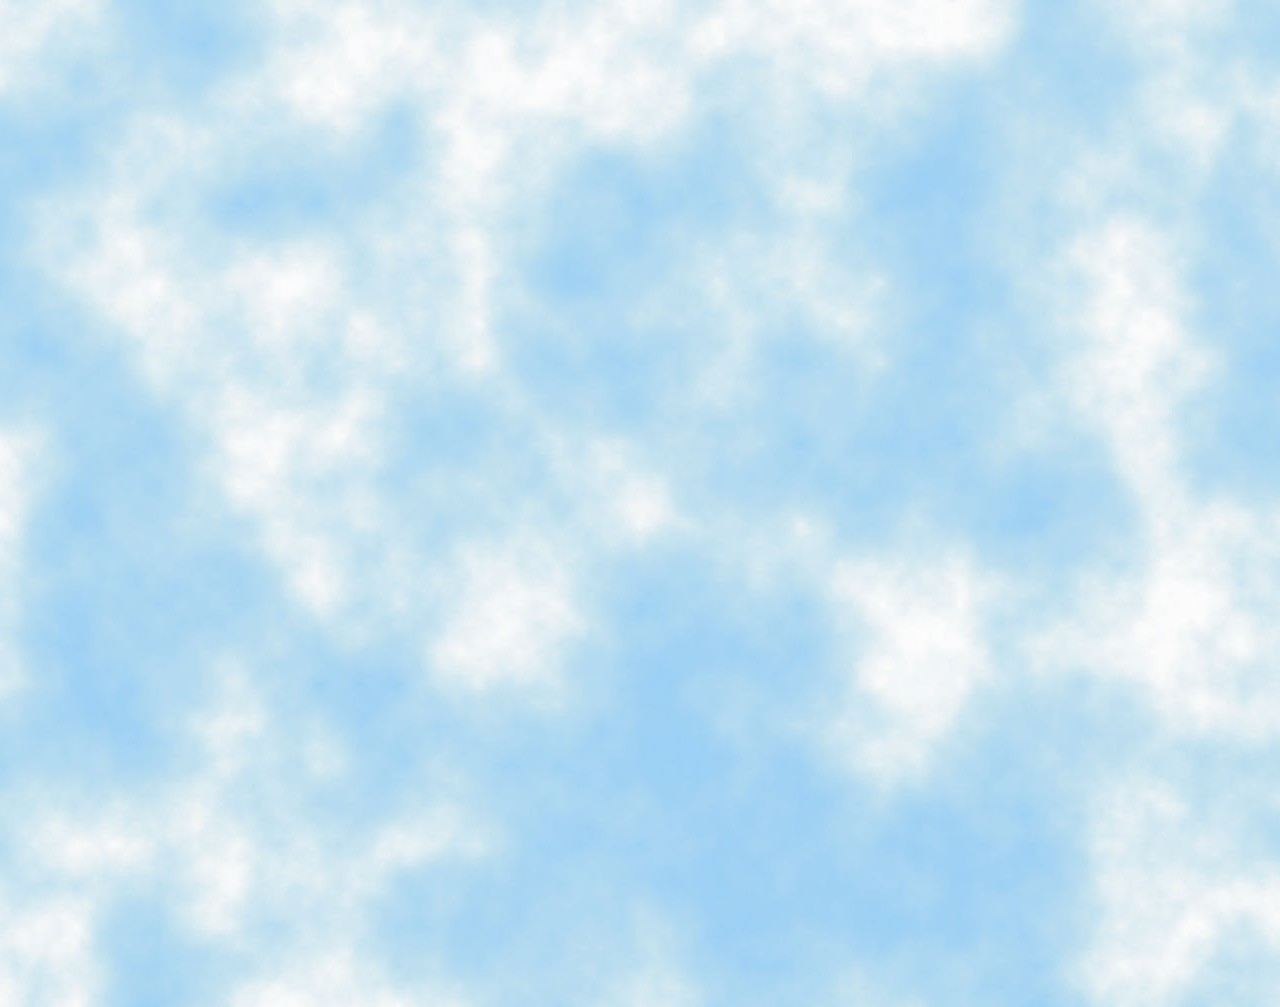 Blue Clouds Images - Reverse Search